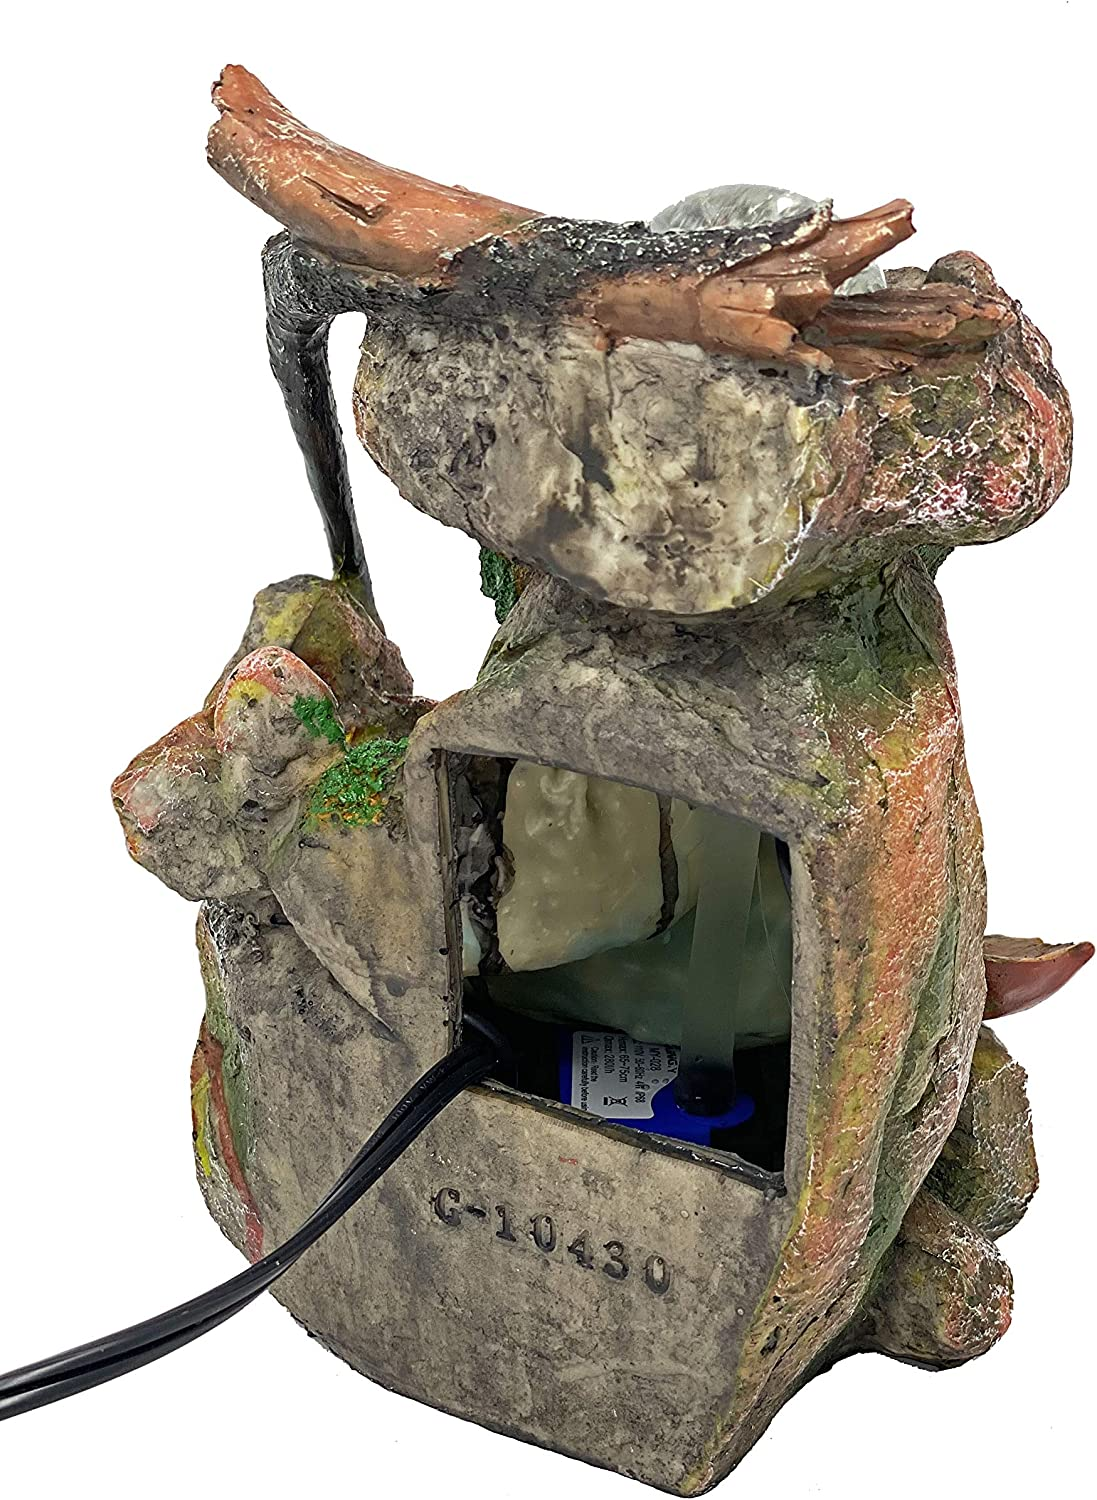 ImagiWonder Tabletop Fountain Indoor Fountain Natures Waterfall in Moss Rocks: Home & Kitchen